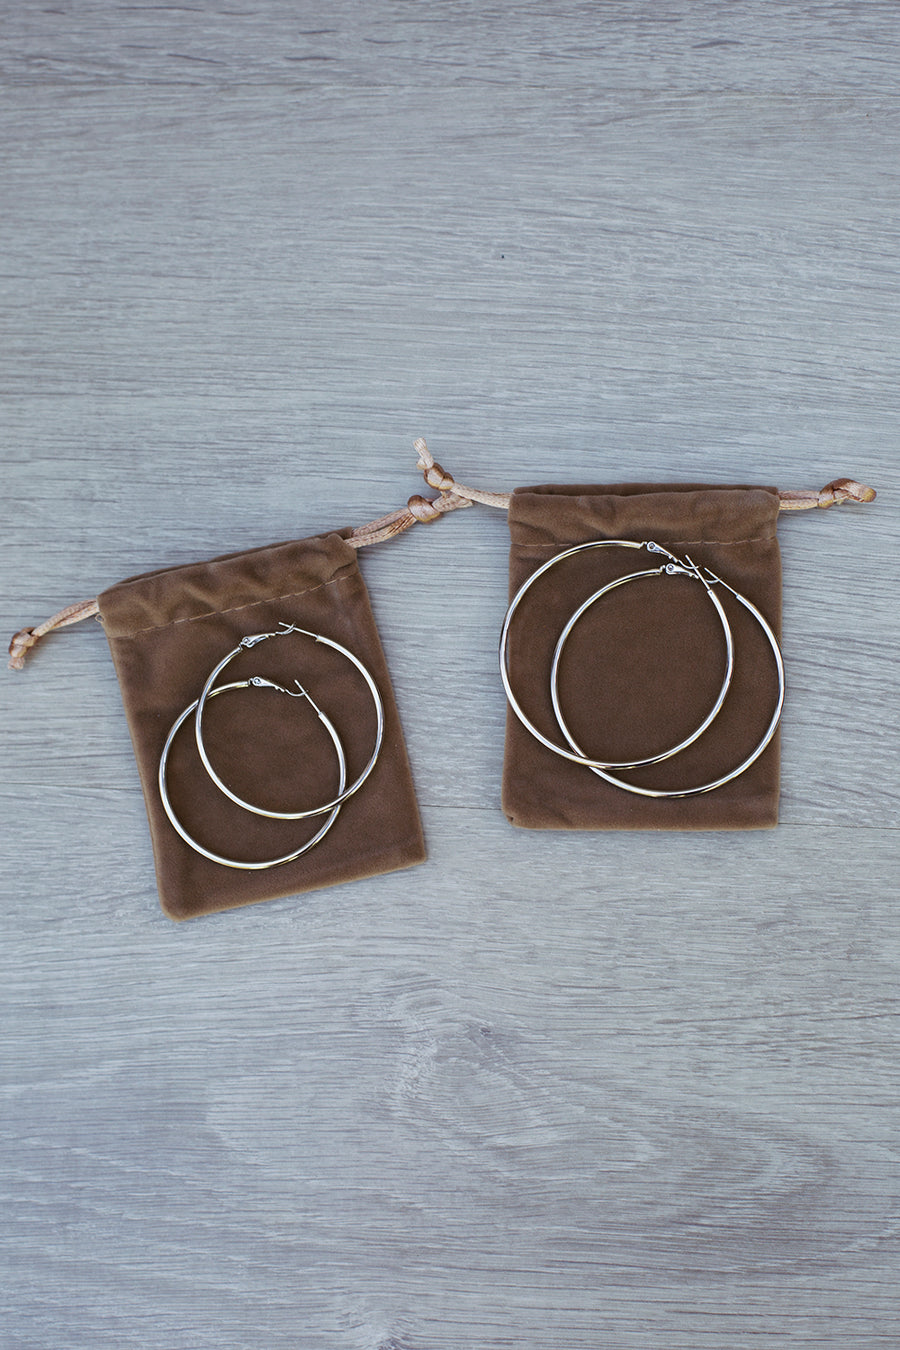 Big City Hoop Earrings in Silver for $35.00